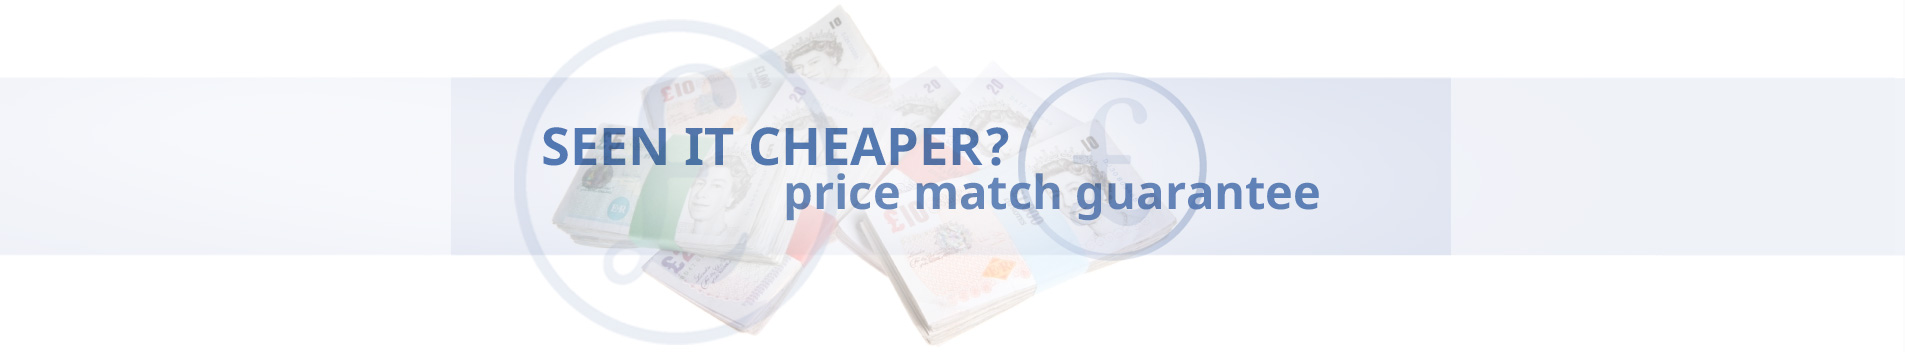 Seen-it-cheaper-Price-match-new-banner-top-page-2cropped